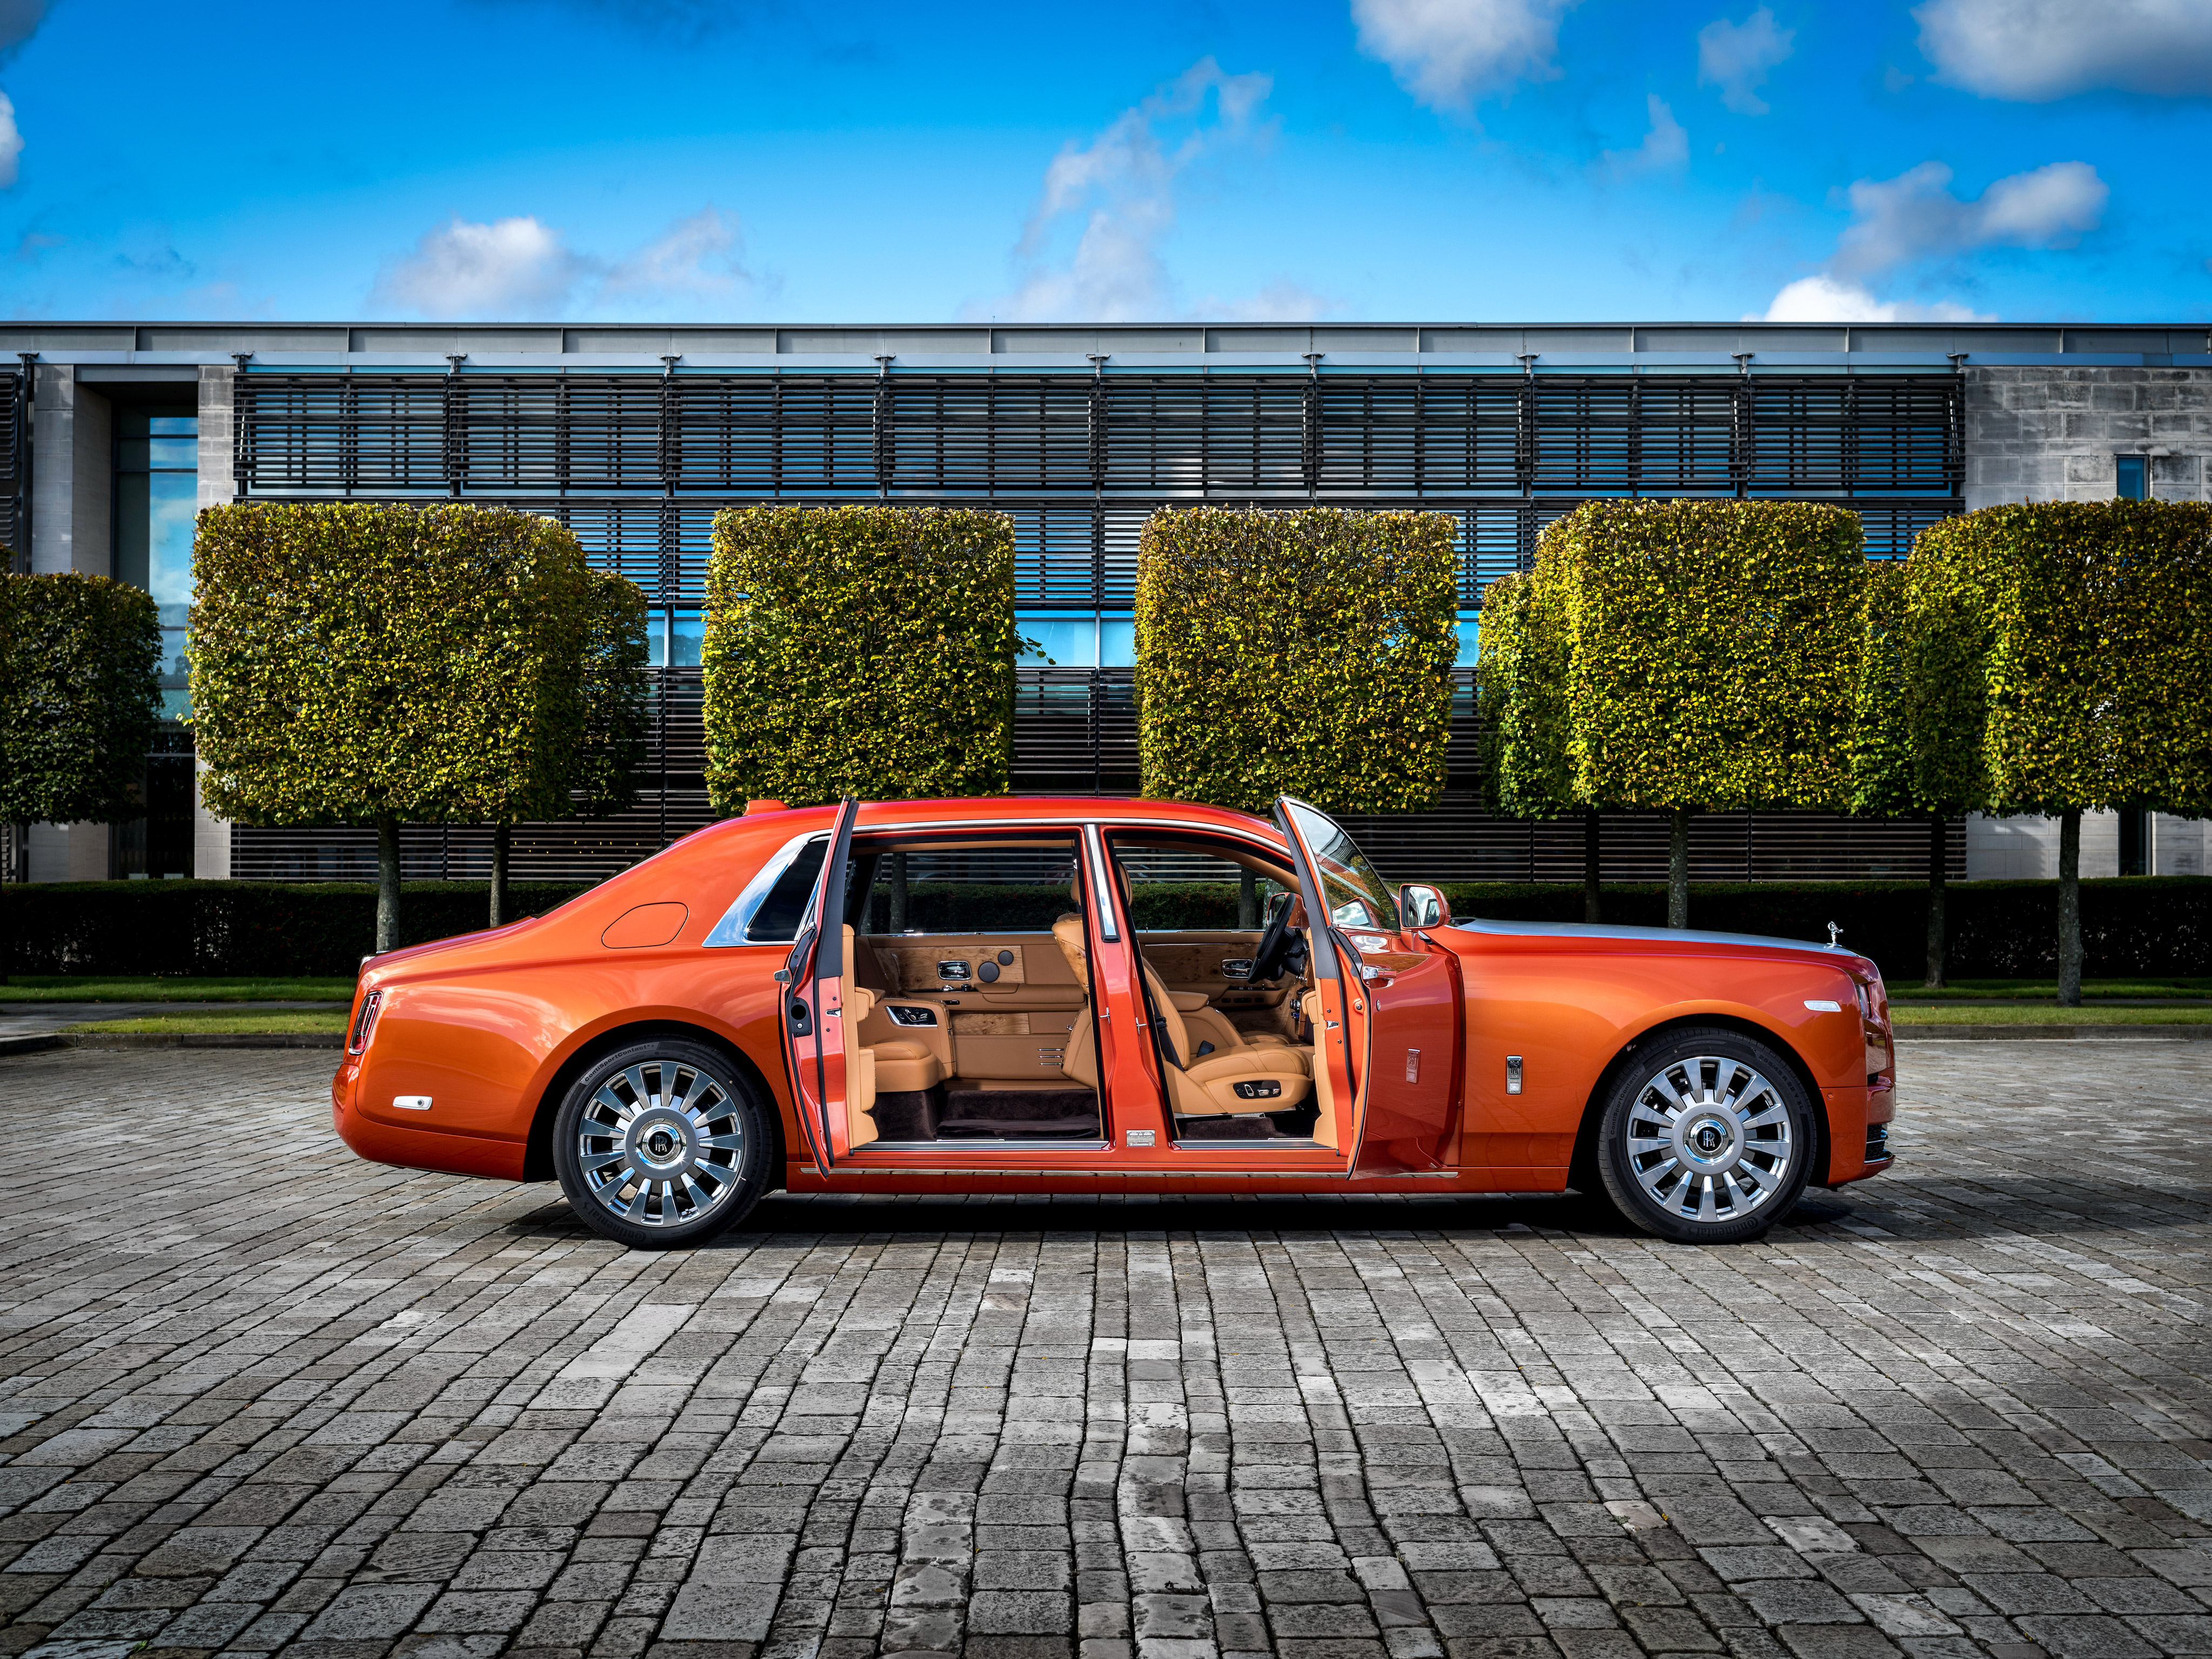 2017 Rolls Royce Phantom Ewb Hd Cars 4k Wallpapers Images Backgrounds Photos And Pictures